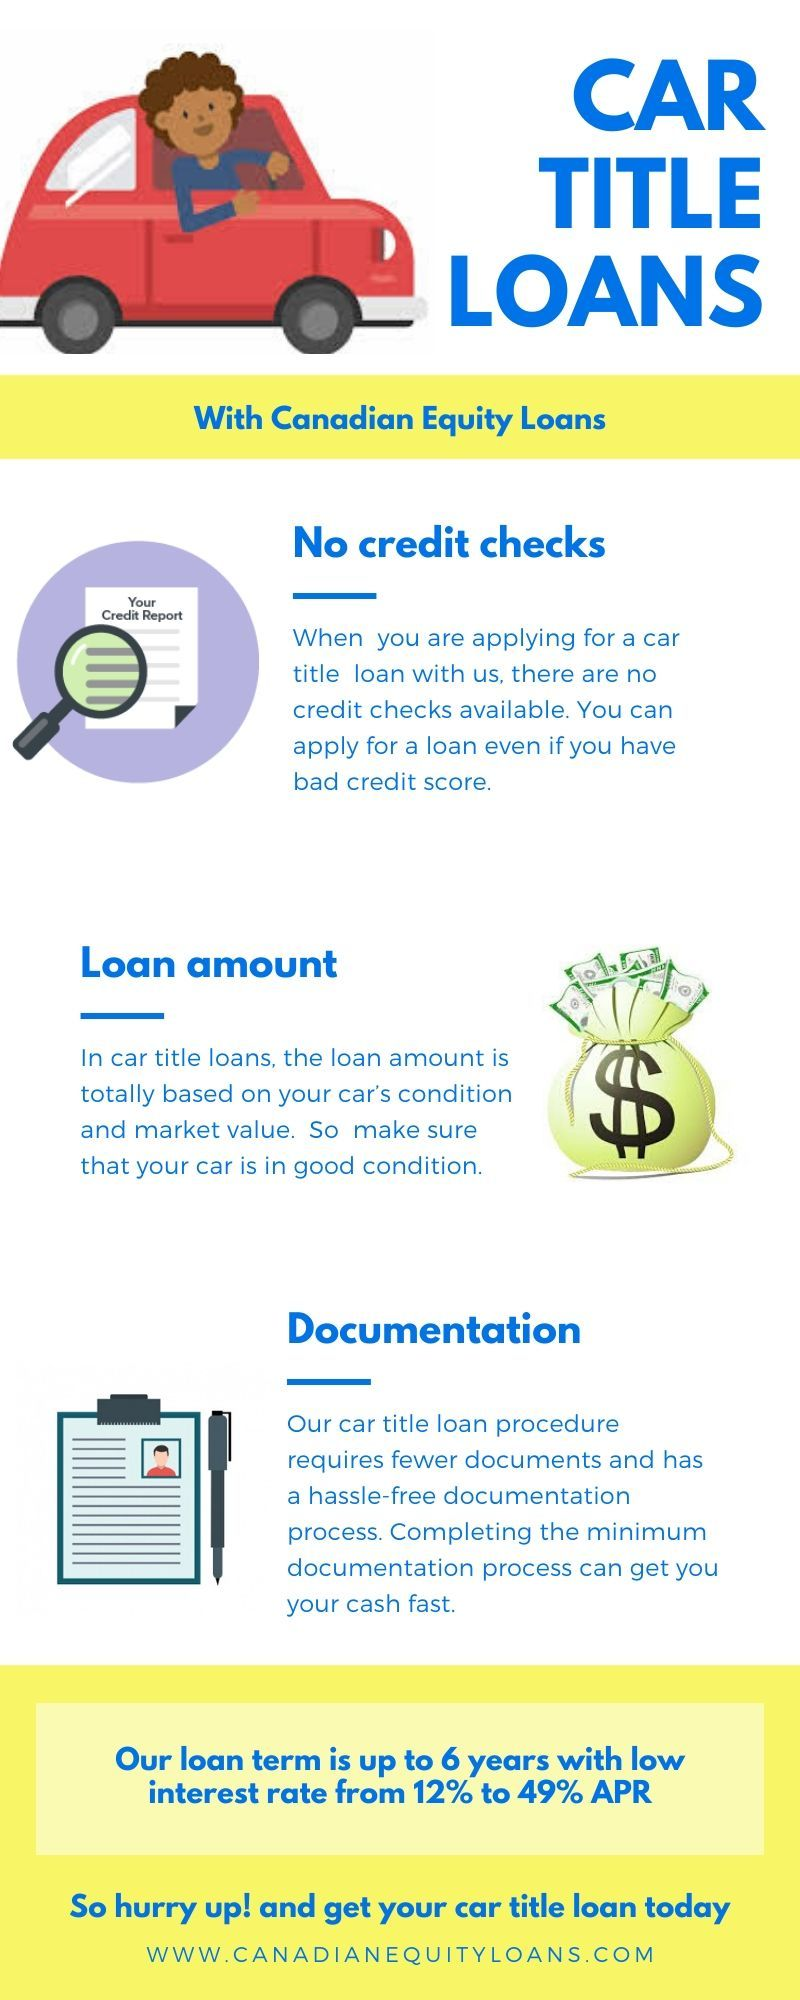 In Ladner Can I Get The Car Title Loans Approval On The Same Day Car Title Bad Credit Score Loan